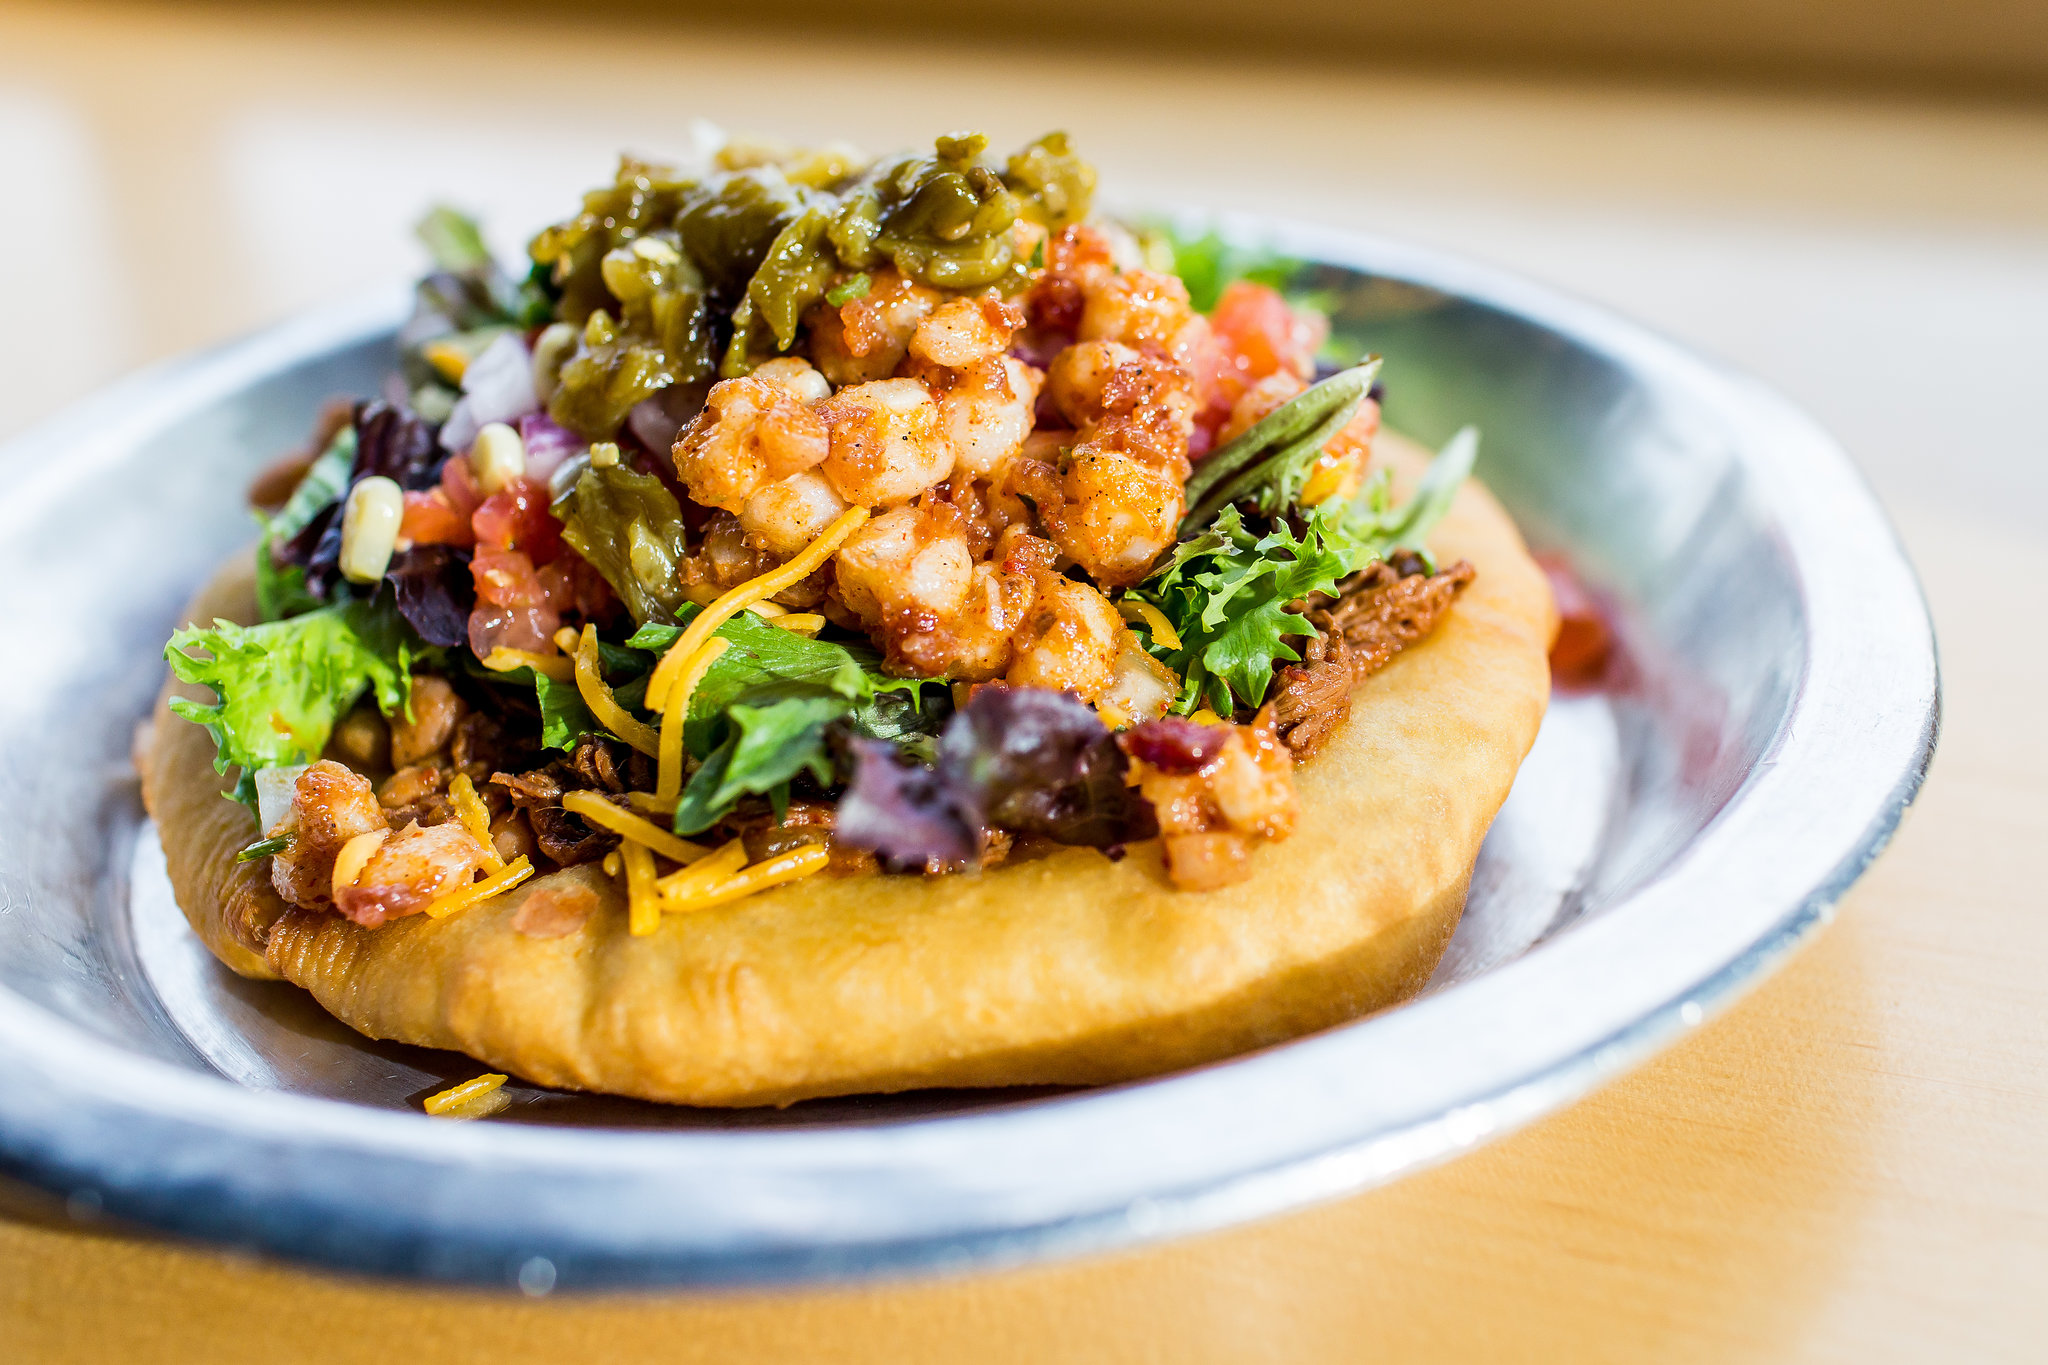 American Indian frybread topped with bison, cheese, and vegetables